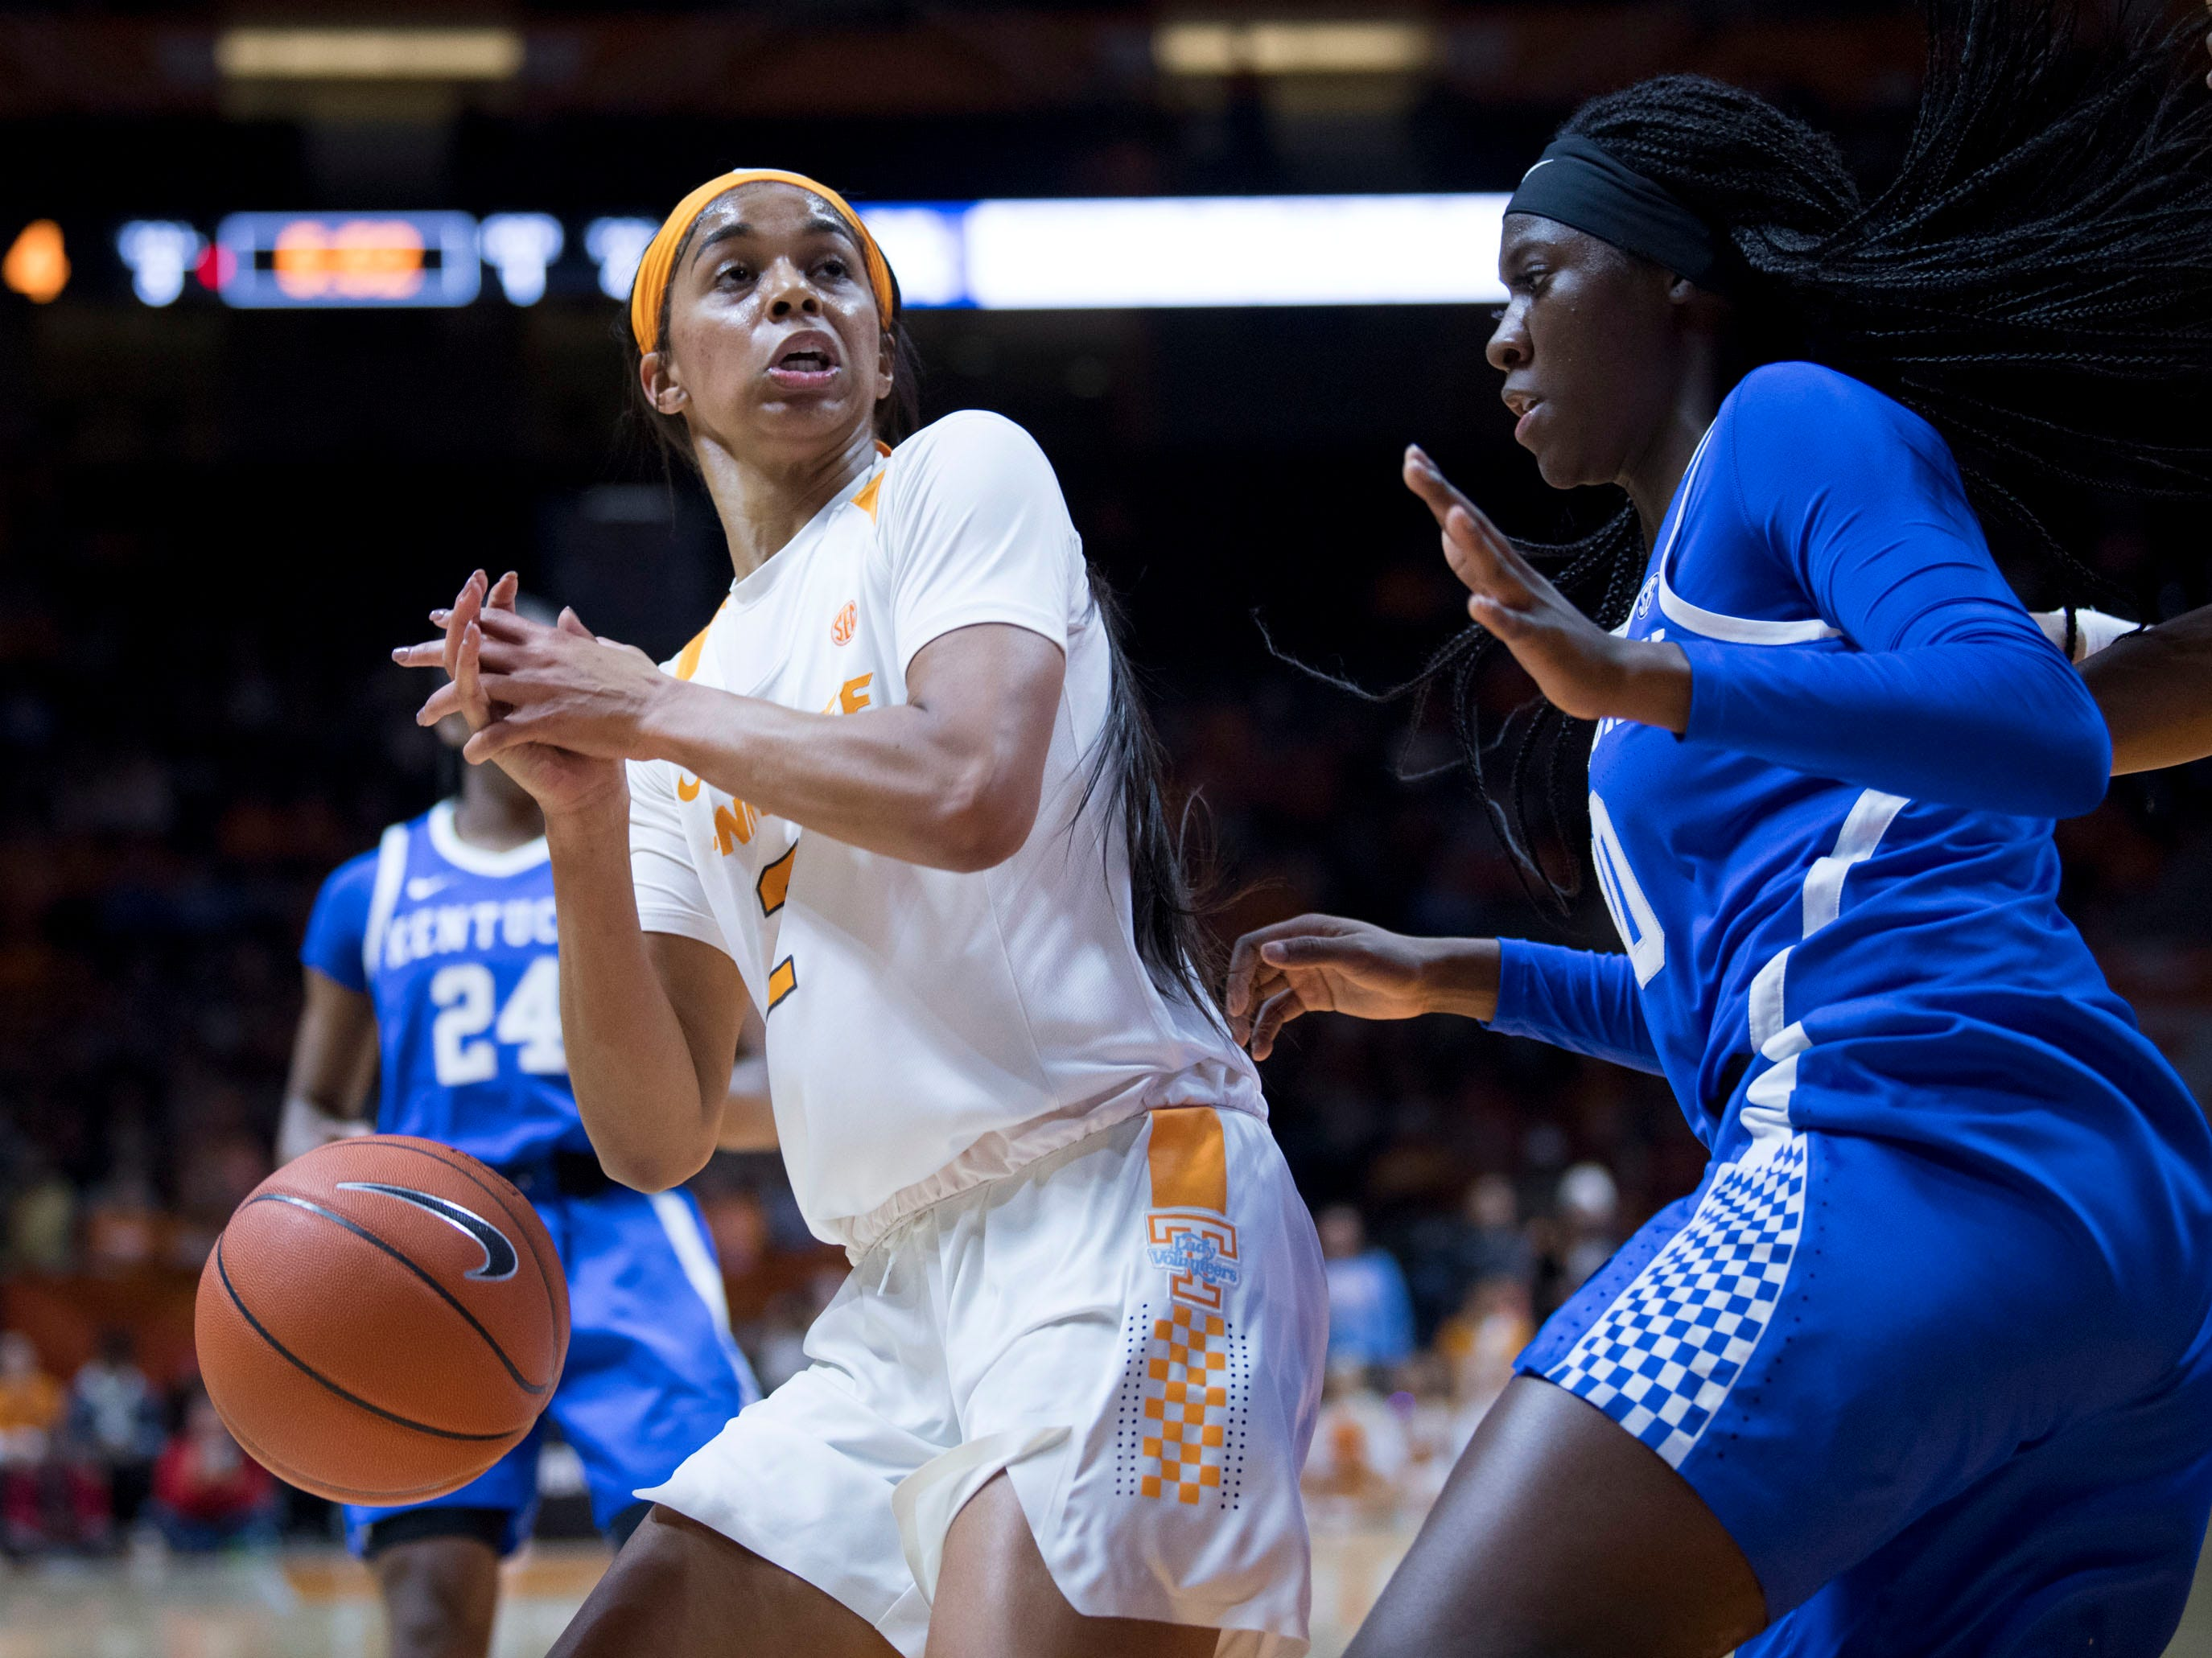 The ball slips out of the hands of Tennessee's Evina Westbrook (2) while she is guarded by Kentucky's Rhyne Howard (10) on Thursday, January 10, 2019.